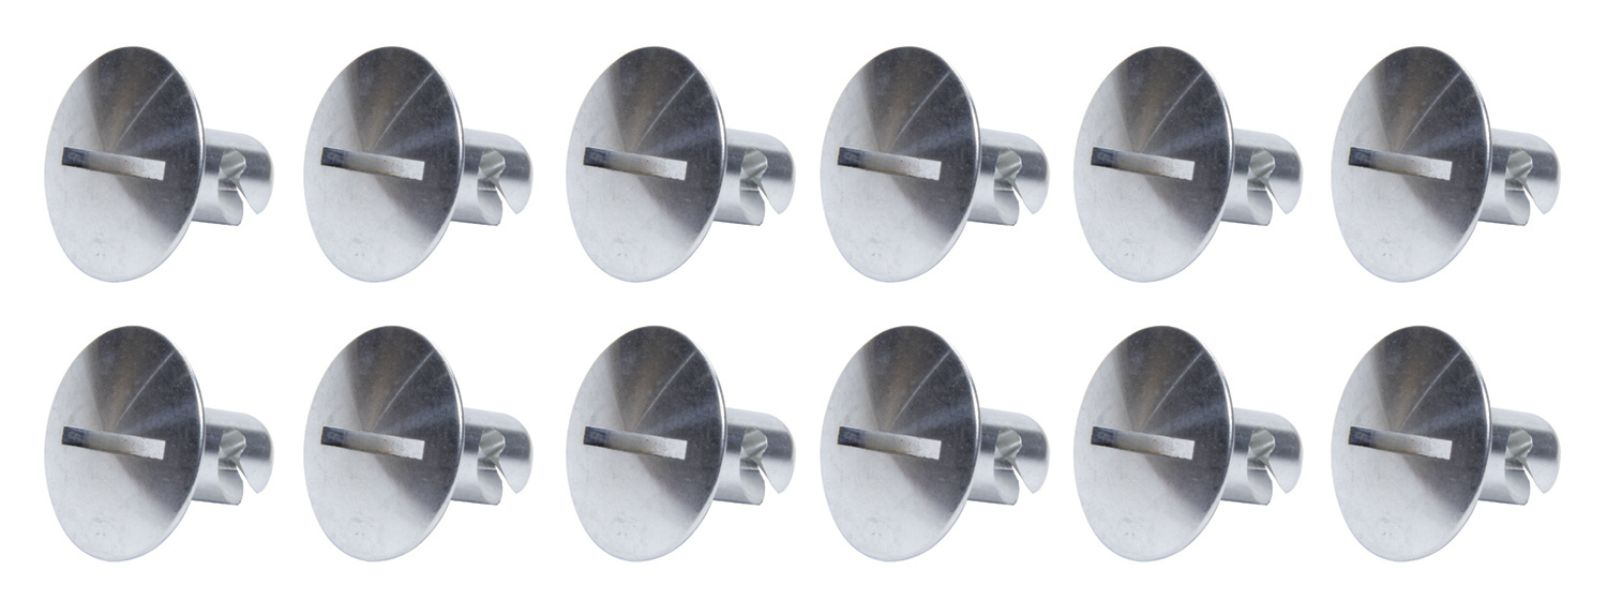 Ti22 Performance TIP8108 Large Head Dzus Buttons .500 Long 10-Pack